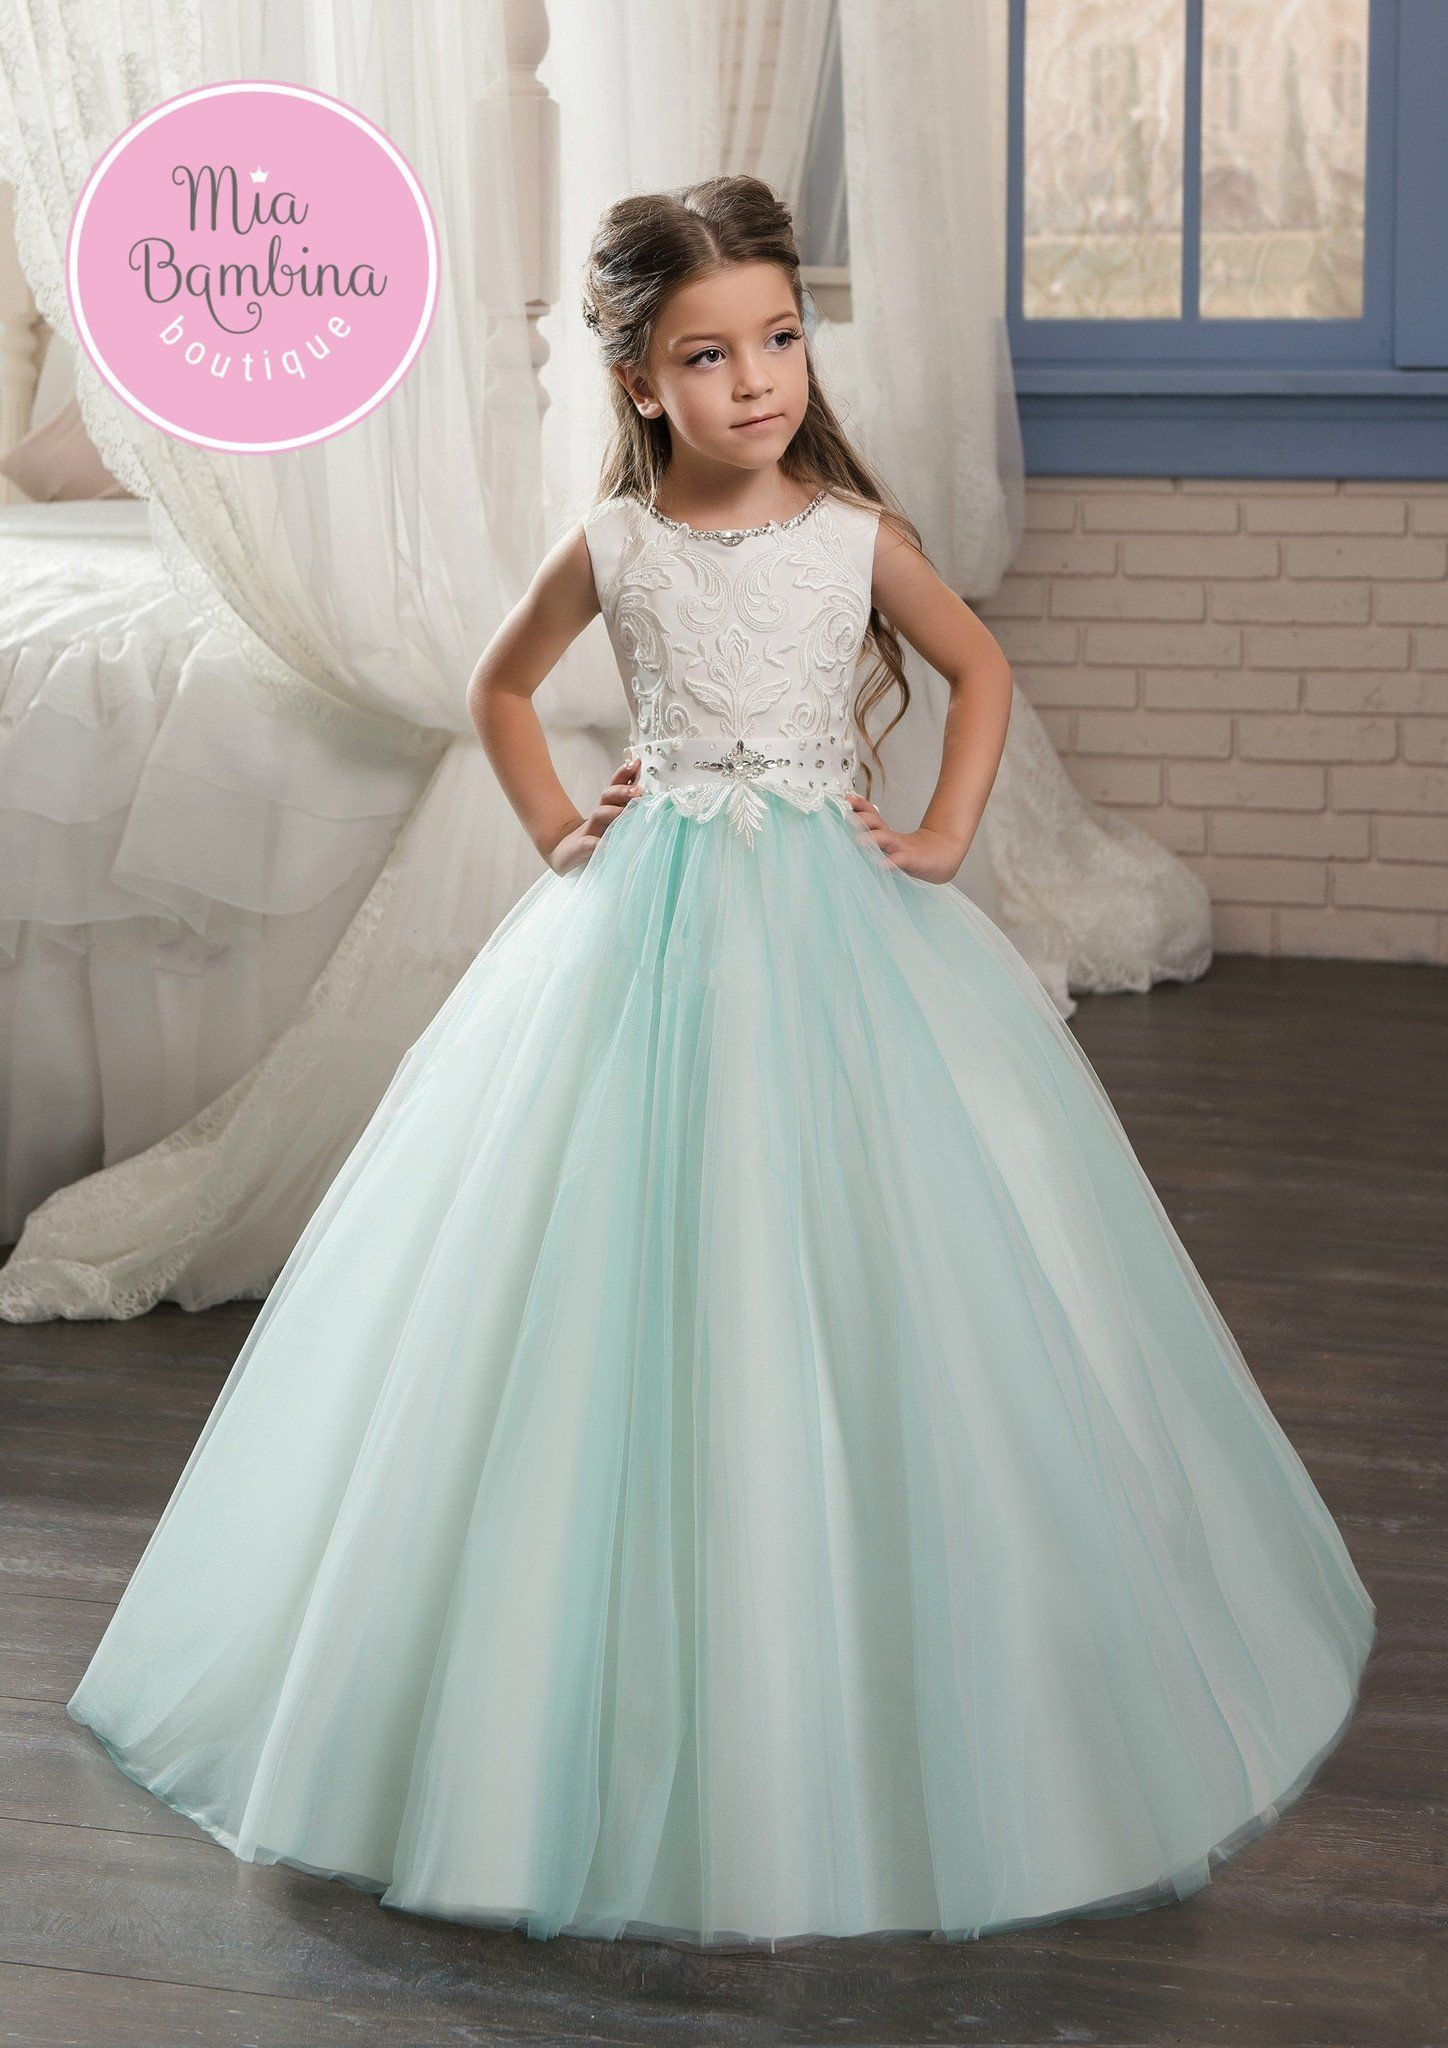 eaaffcaade809 Lovely Seattle flower girl dress. Very elegant Seattle flower girl gown  features a beautiful white lace overlayed top and a multi-layered tulle  skirt.